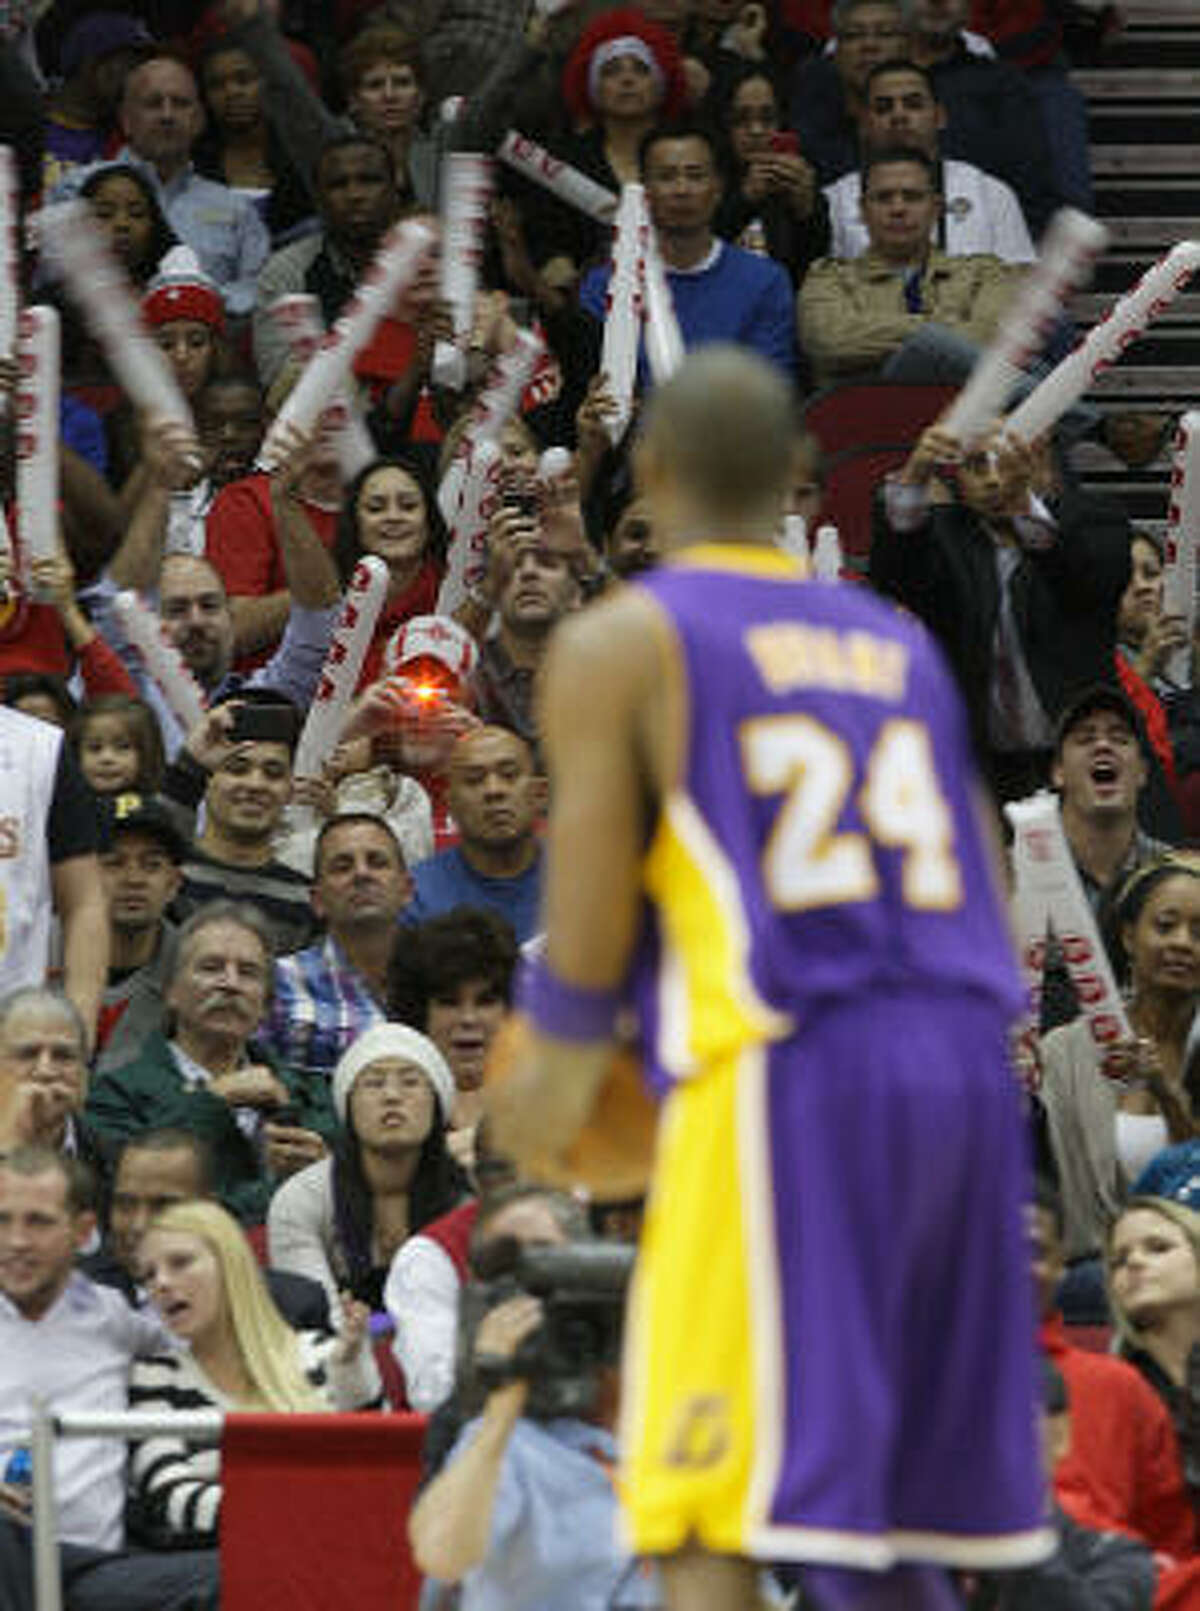 Houston fans try to distract Lakers Kobe Bryant as he shoots a freethrow during the second half of the Houston Rockets-Los Angeles Lakers MLB game at The Toyota Center in Houston. Rockets won the game 109-99.